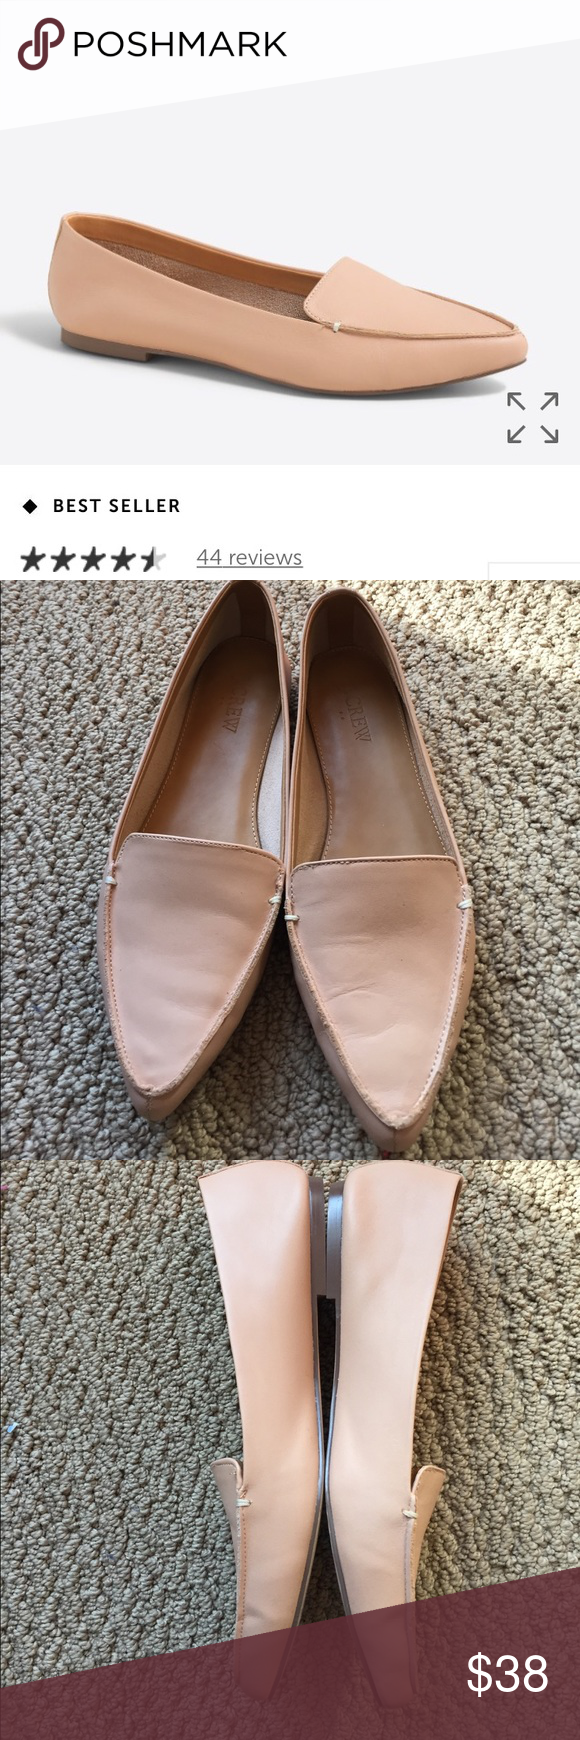 075d7f14749 J Crew Factory Edie Leather Loafer Sz 9 Warm beige color. Worn a few times.  True to size J. Crew Shoes Flats   Loafers